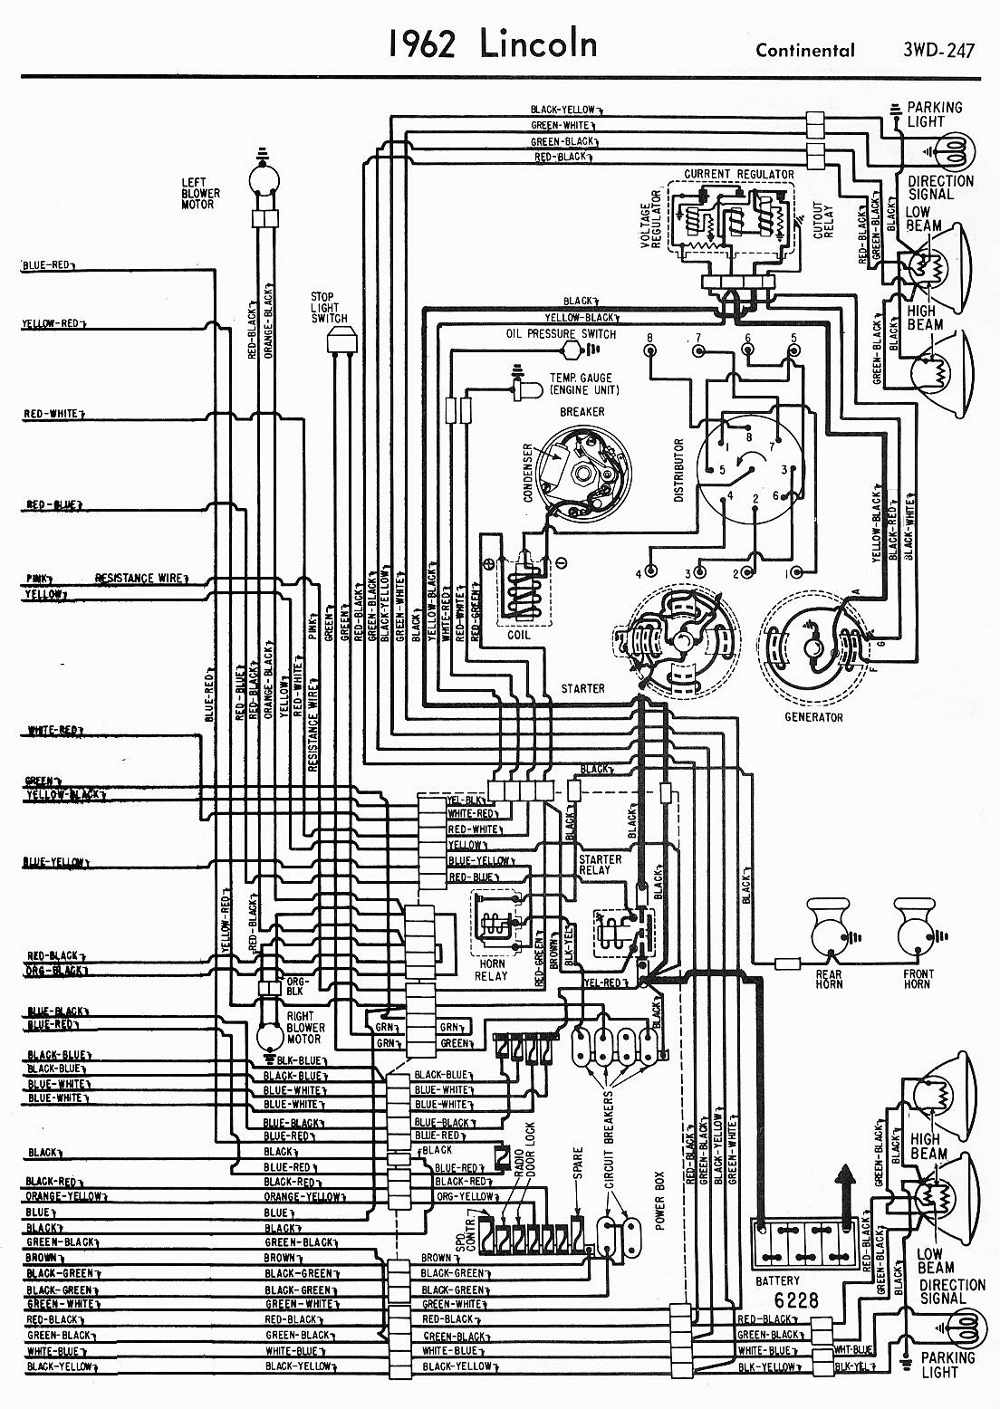 62 Lincoln Engine Diagram Wiring Library 2000 Continental Fuse Box Location